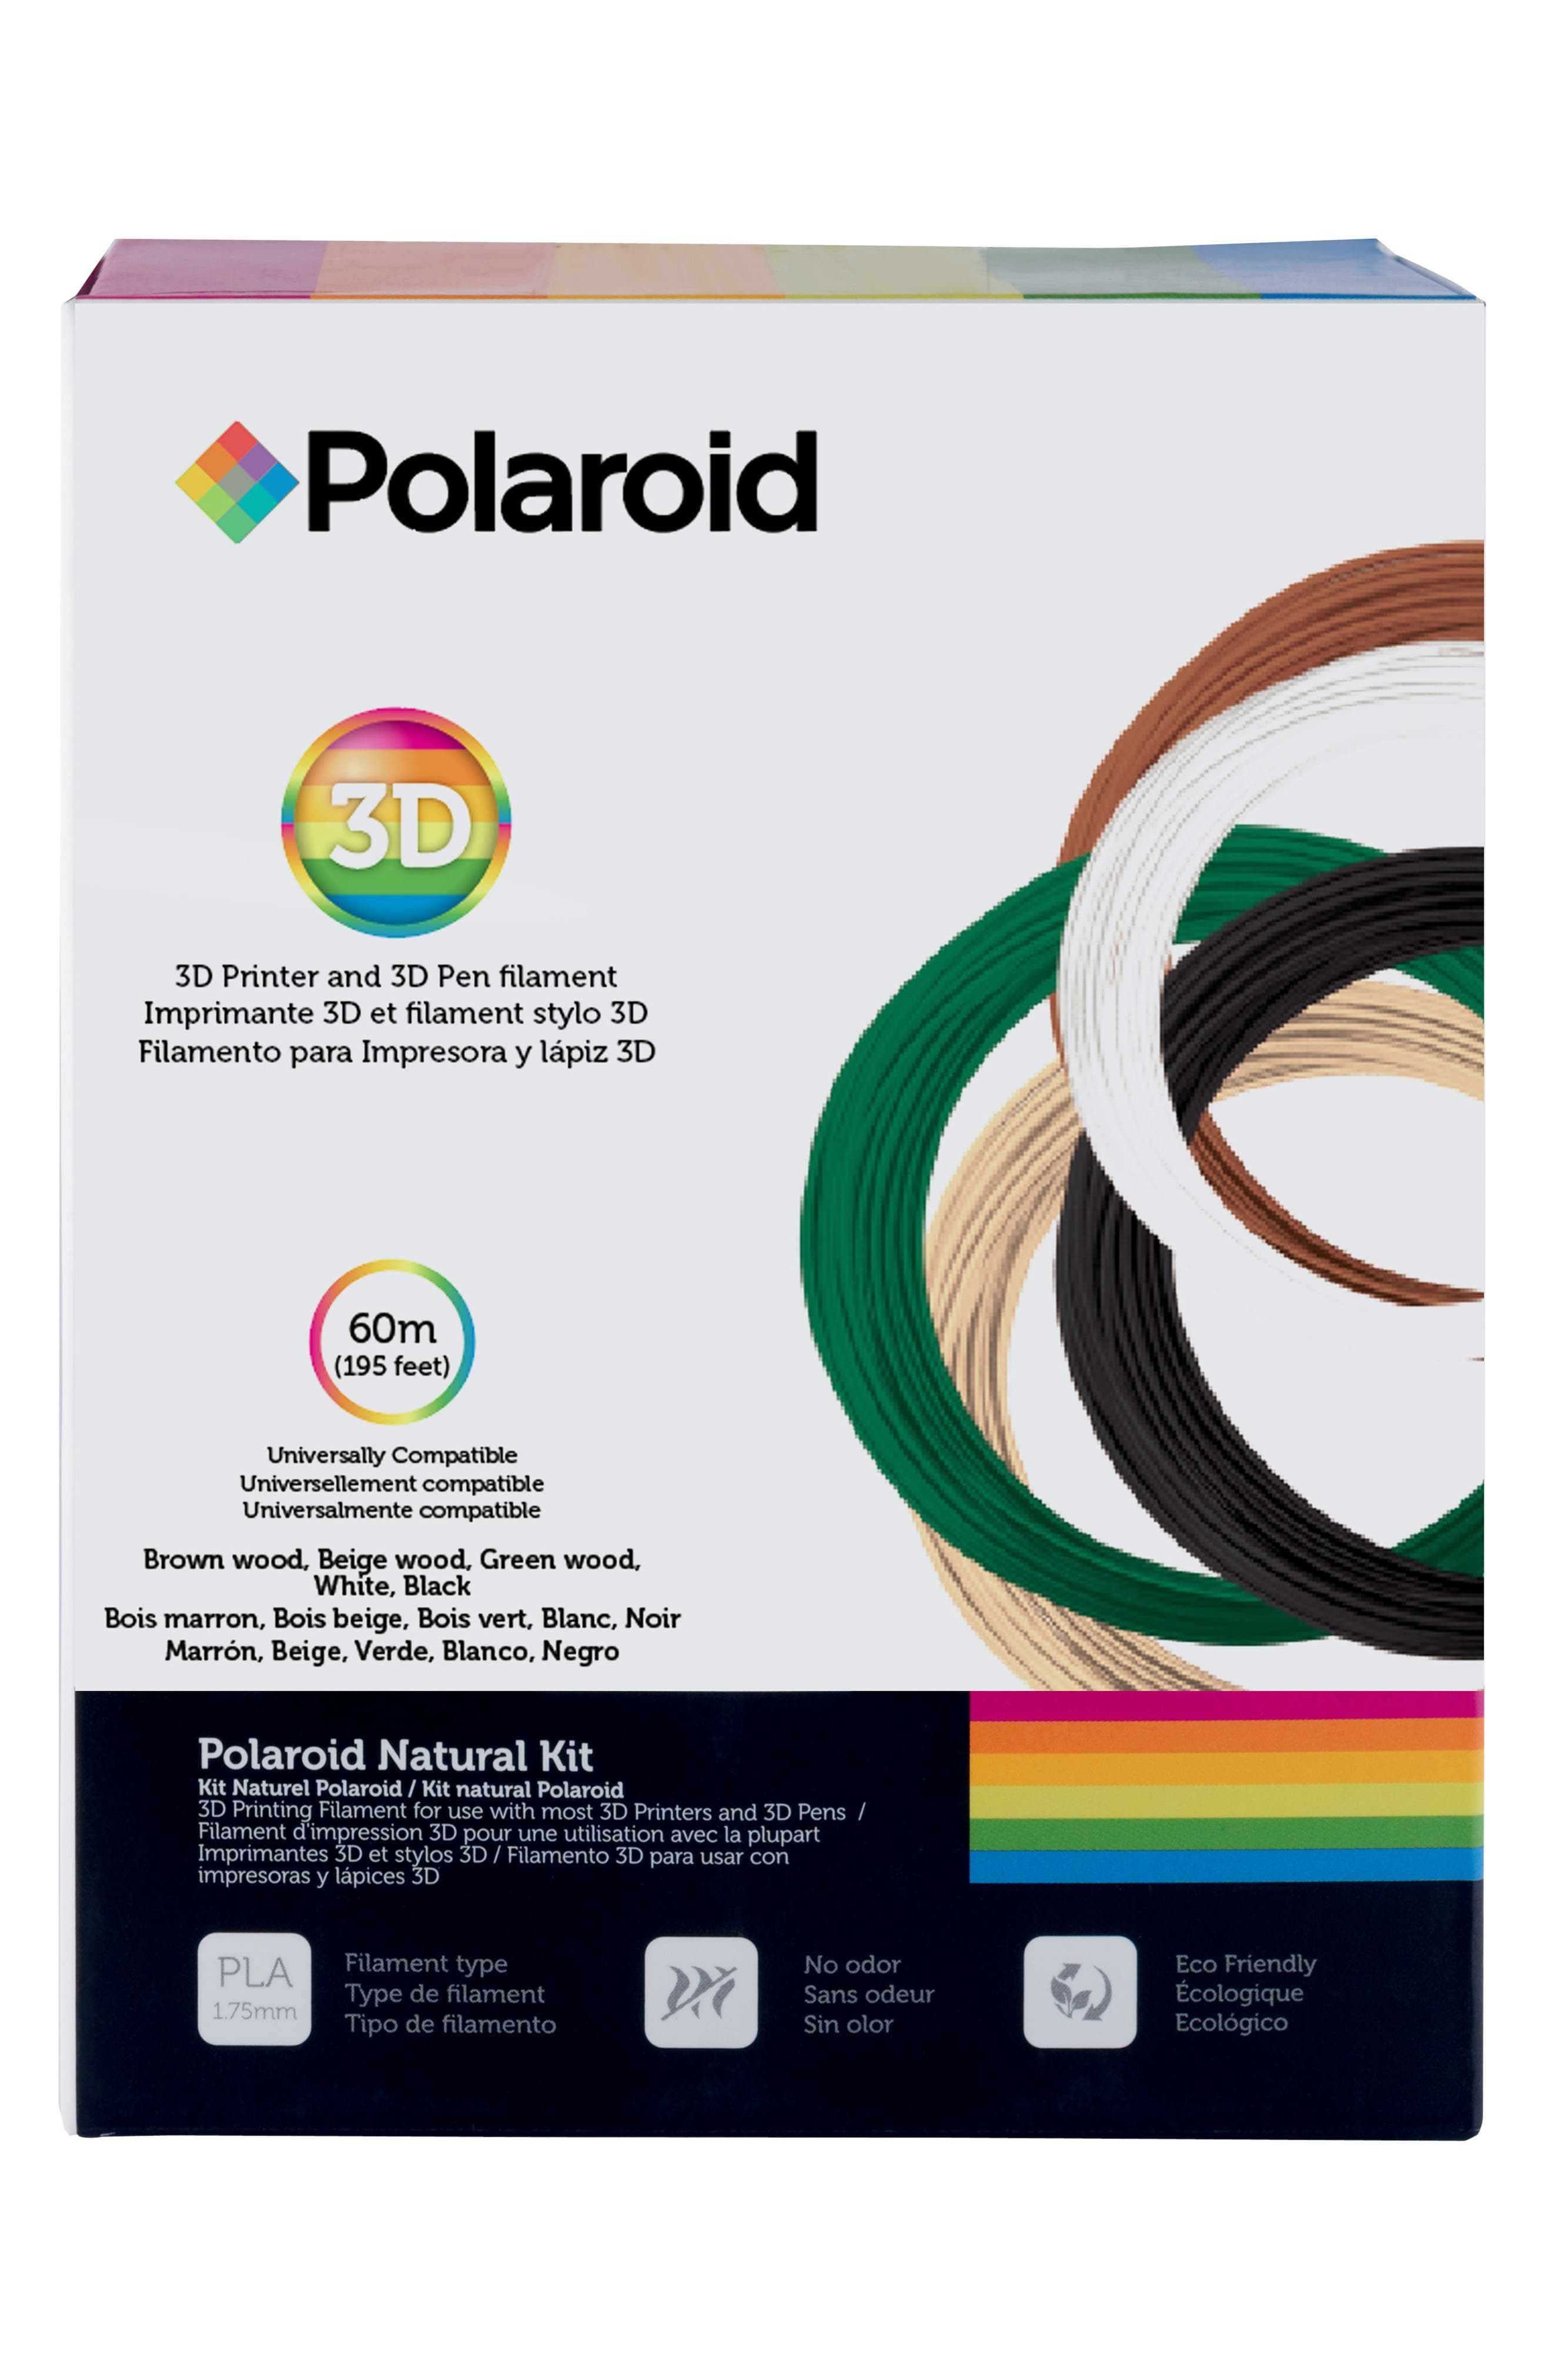 Polaroid 3D Natural Filament Kit